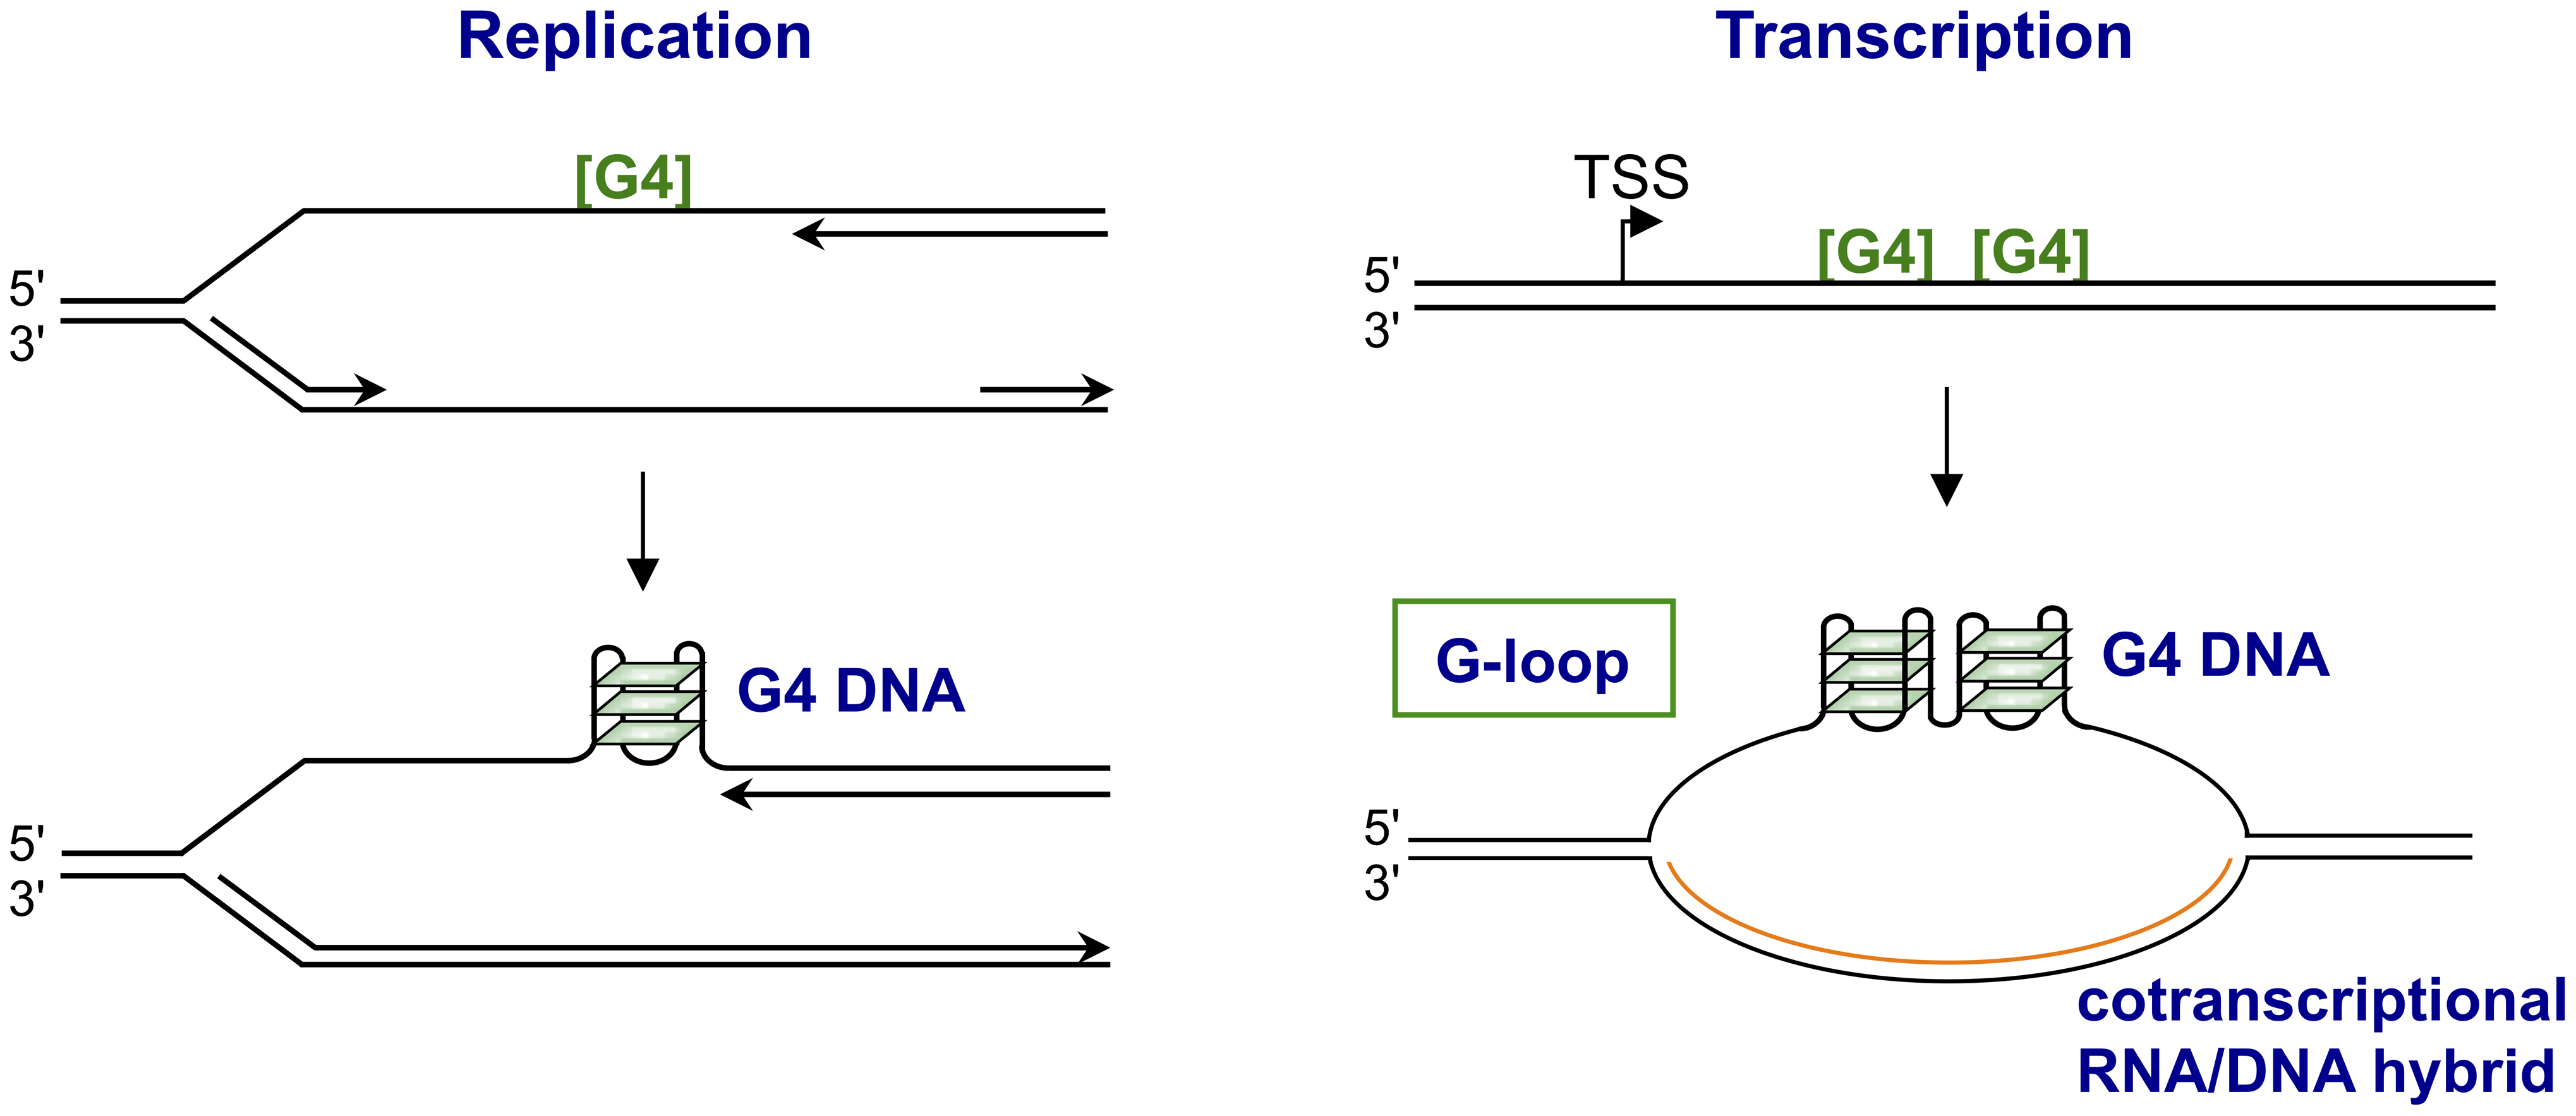 Structures form upon replication or transcription of regions bearing G4 motifs.